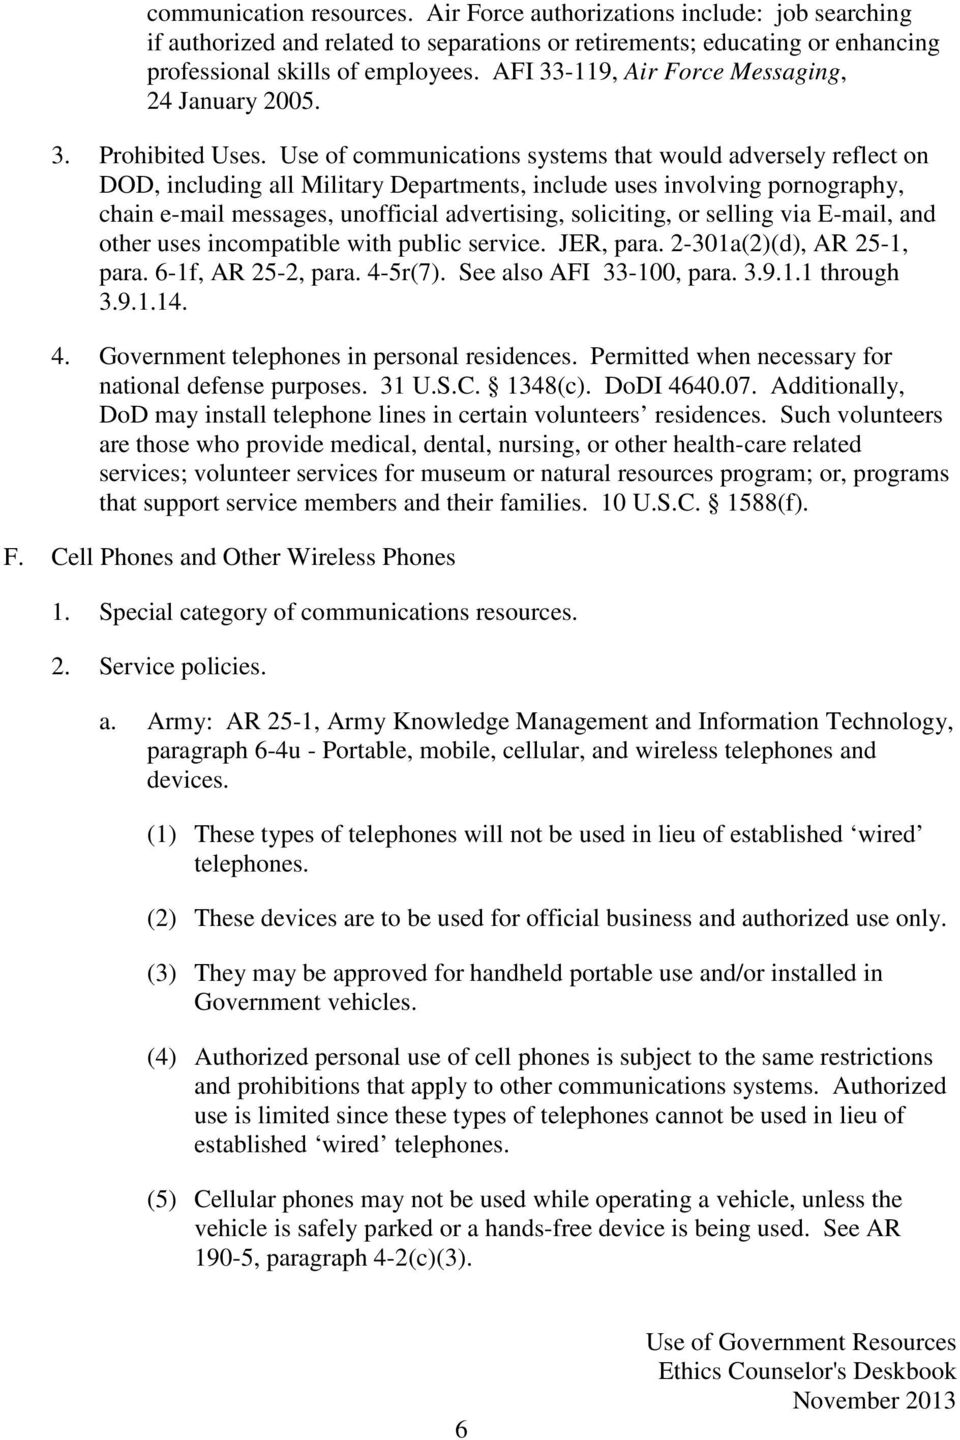 Use of communications systems that would adversely reflect on DOD, including all Military Departments, include uses involving pornography, chain e-mail messages, unofficial advertising, soliciting,